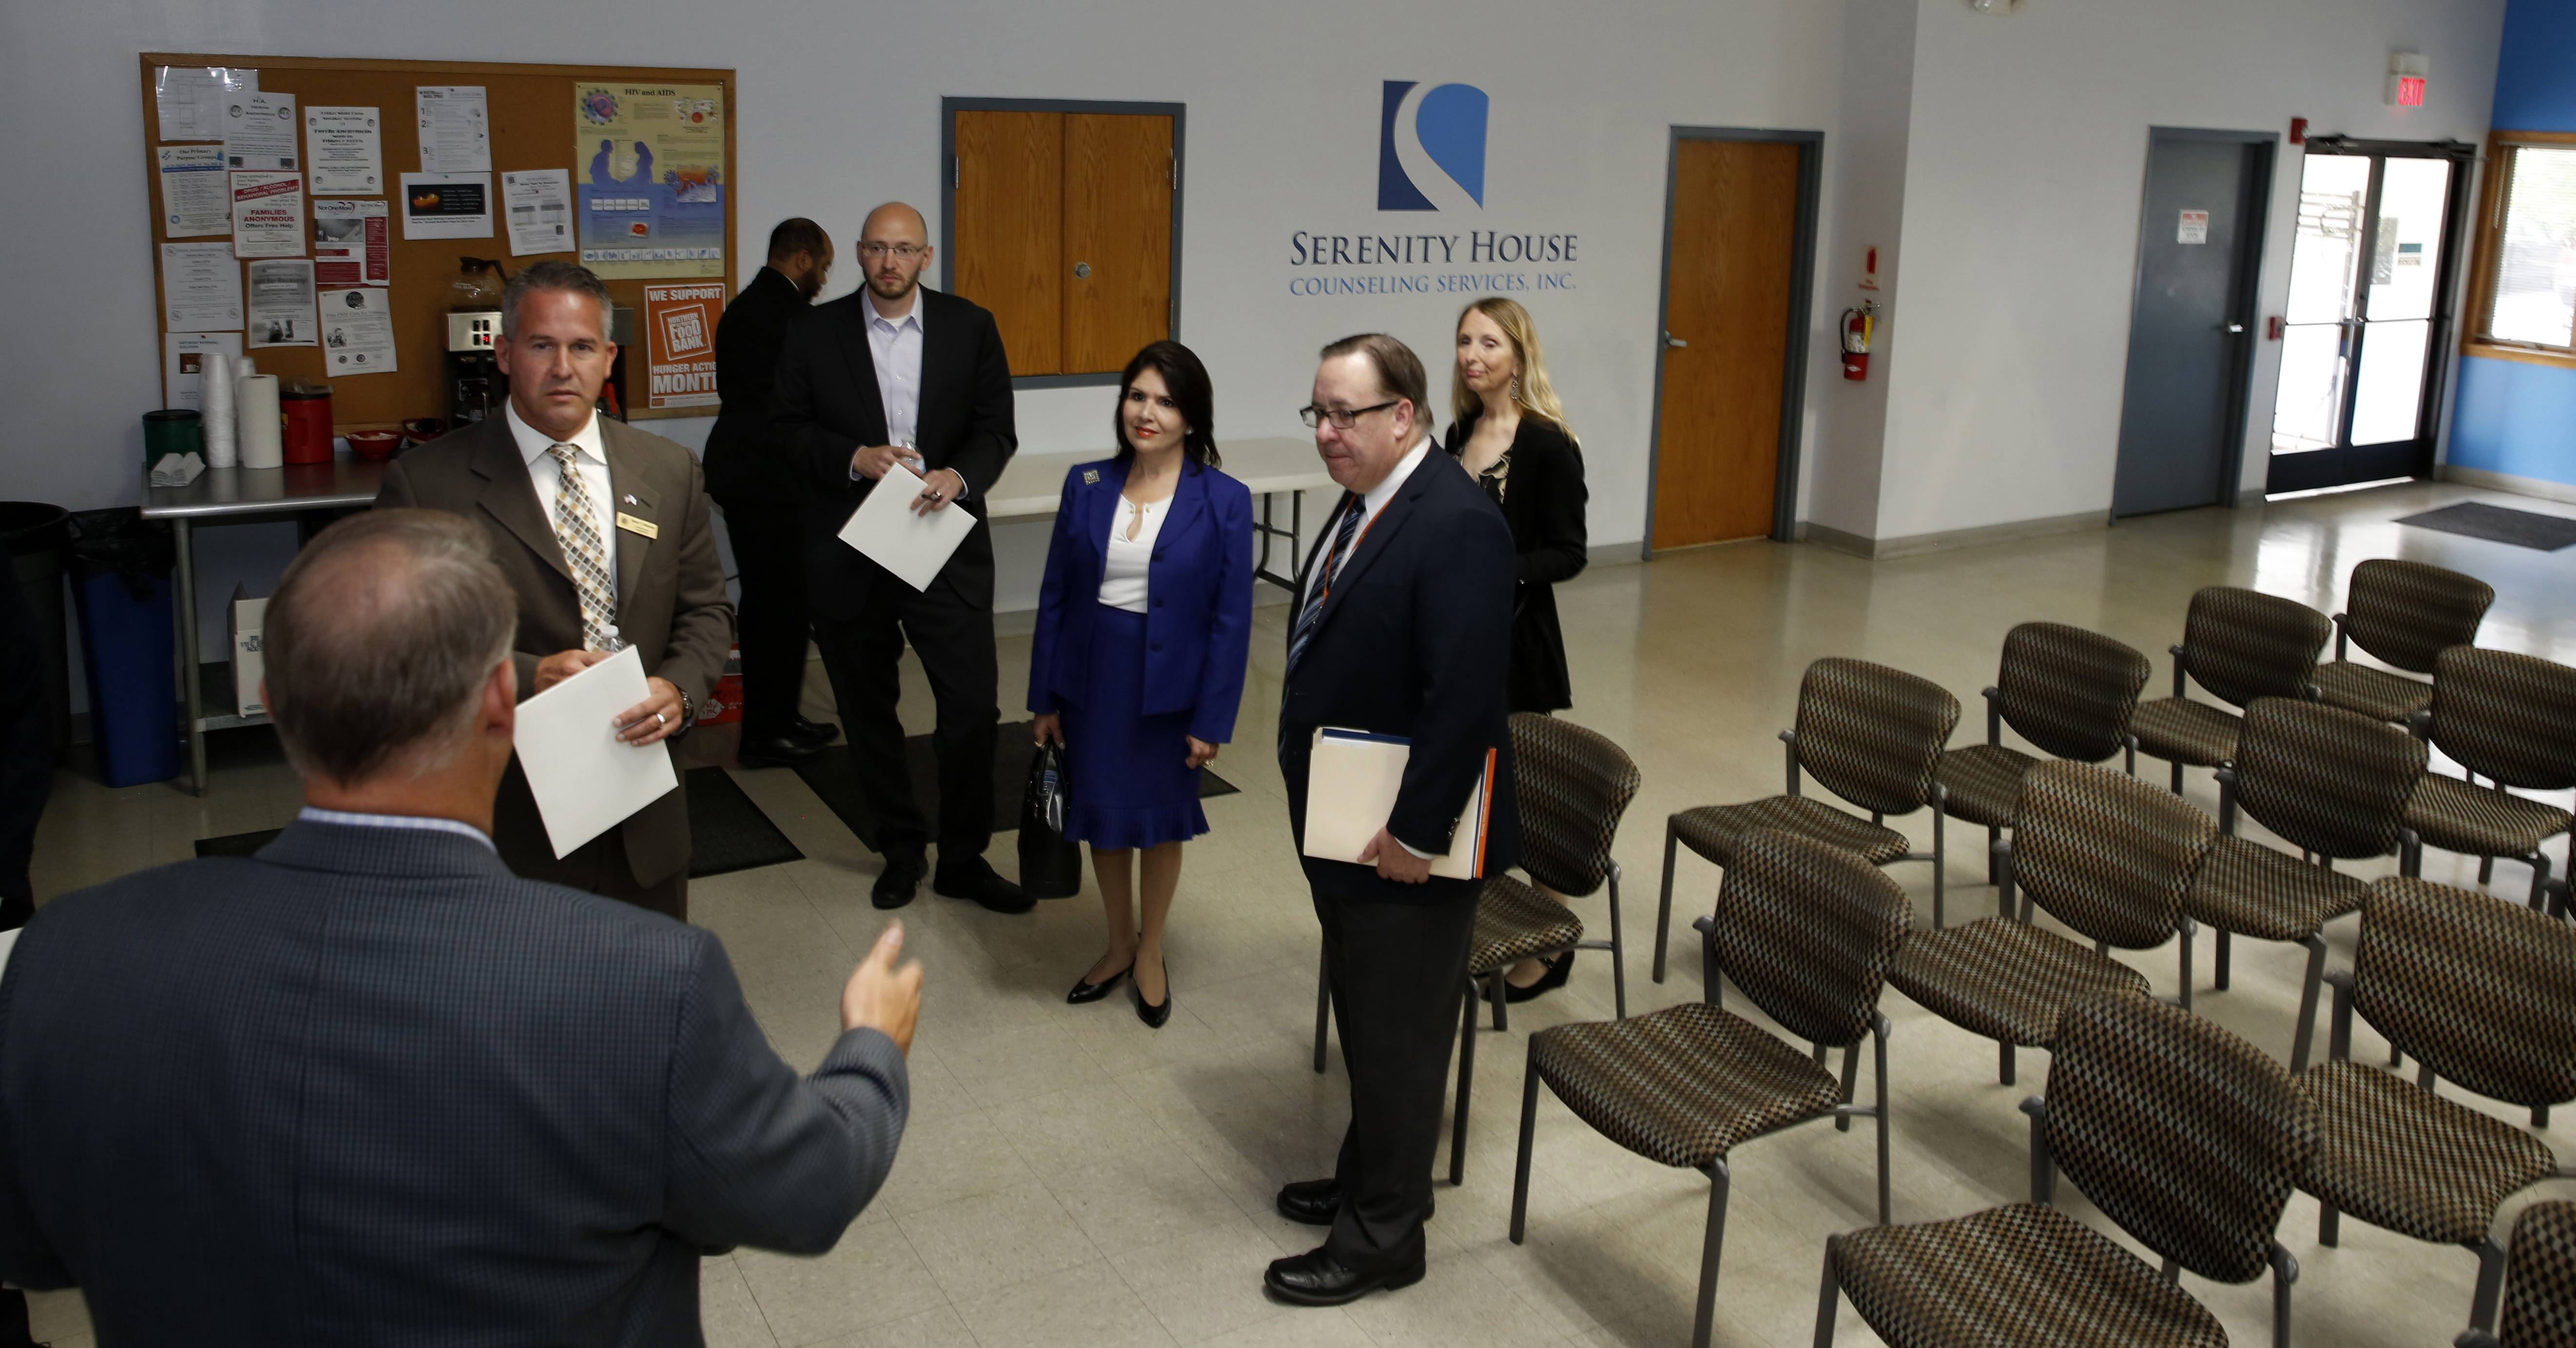 Mark Buschbacher, executive director of Serenity House Counseling Services, left, shows Lt. Gov. Evelyn Sanguinetti, center, and other officials a meeting space on the drug and alcohol recovery company's Addison campus. Serenity House offers a 90-day residential program, but Buschbacher said he fears many recovering opioid addicts are not able to take enough time for their treatment.